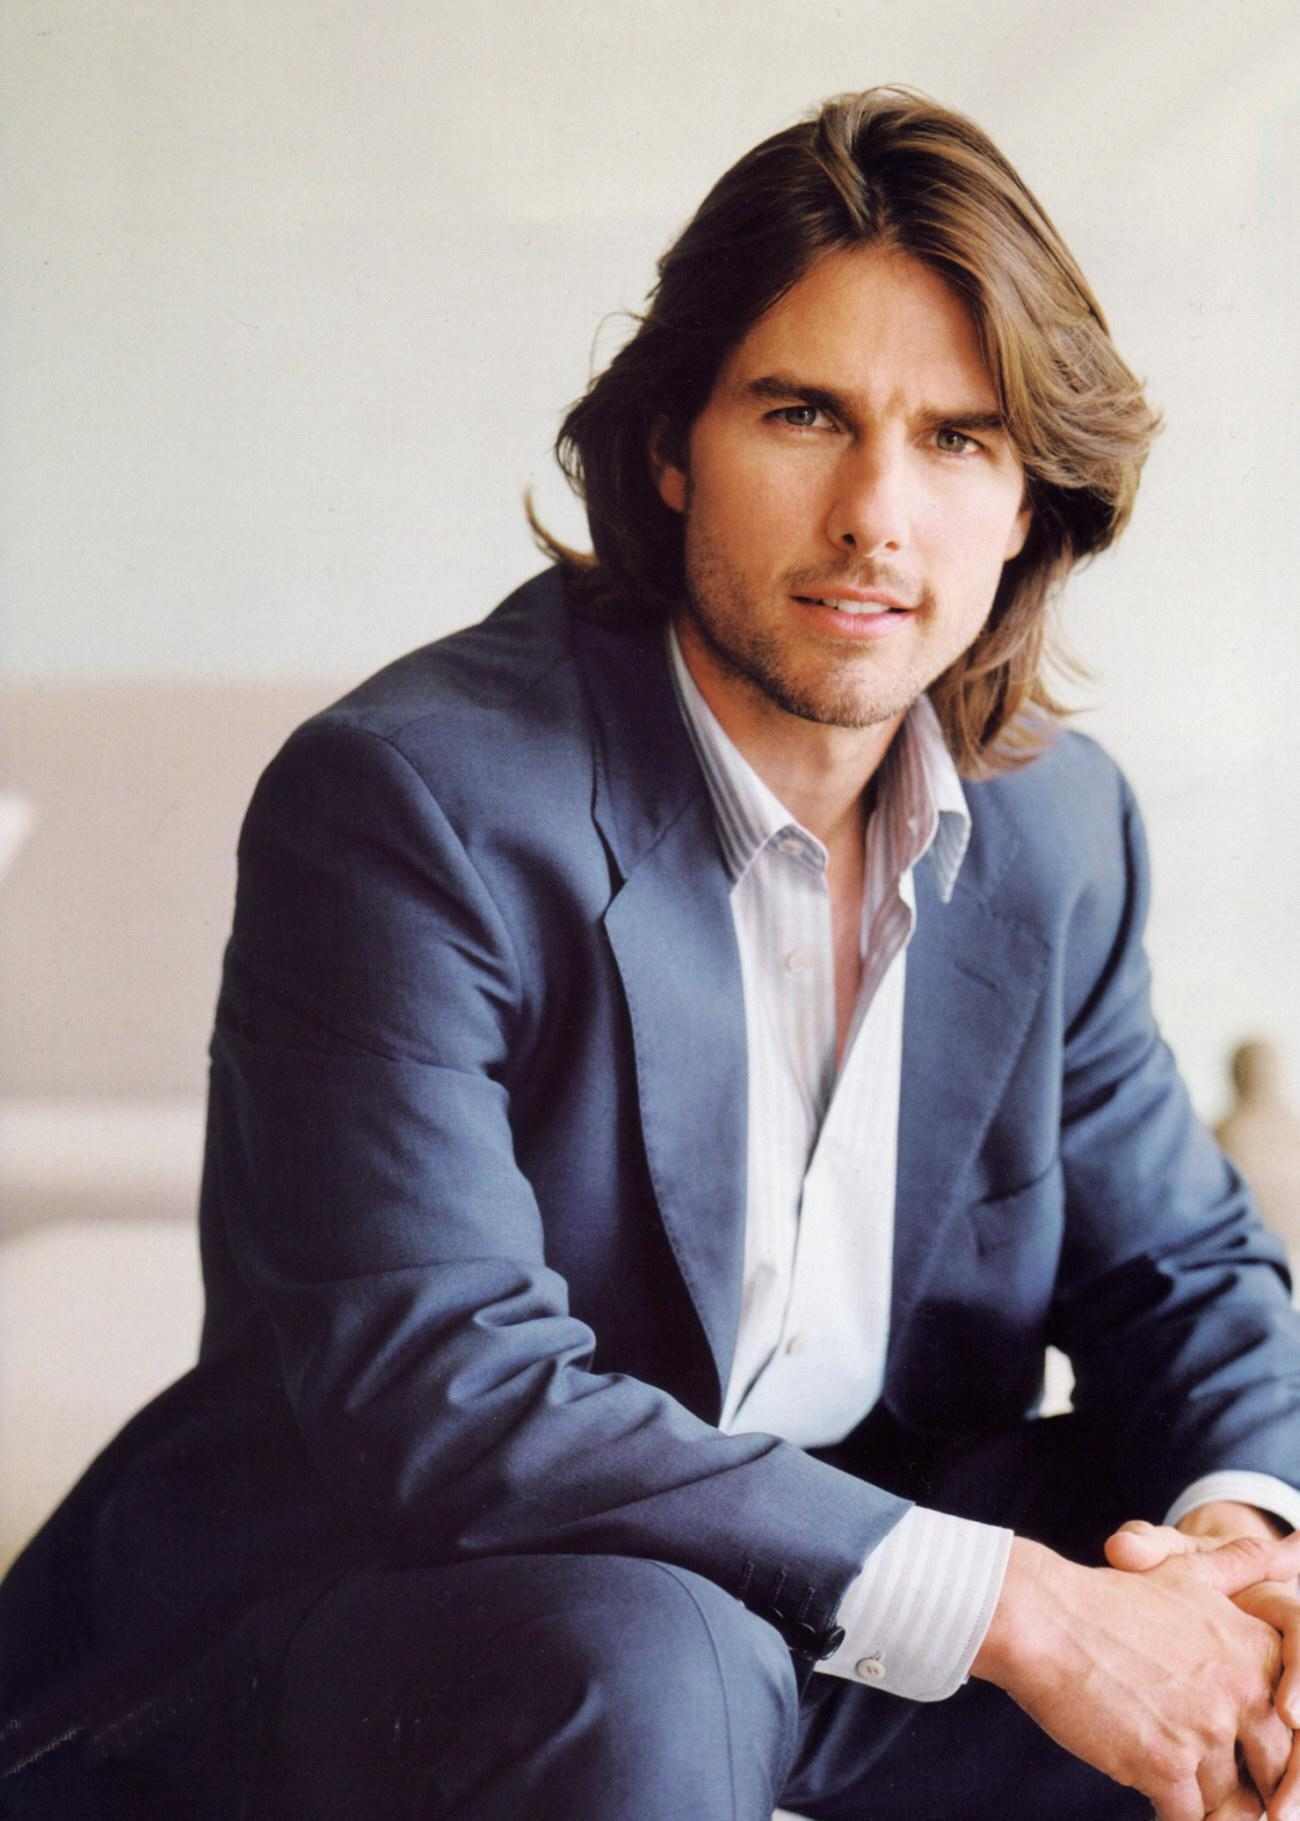 http://images2.fanpop.com/images/photos/5400000/Tom-Cruise-tom-cruise-5456462-1300-1821.jpg